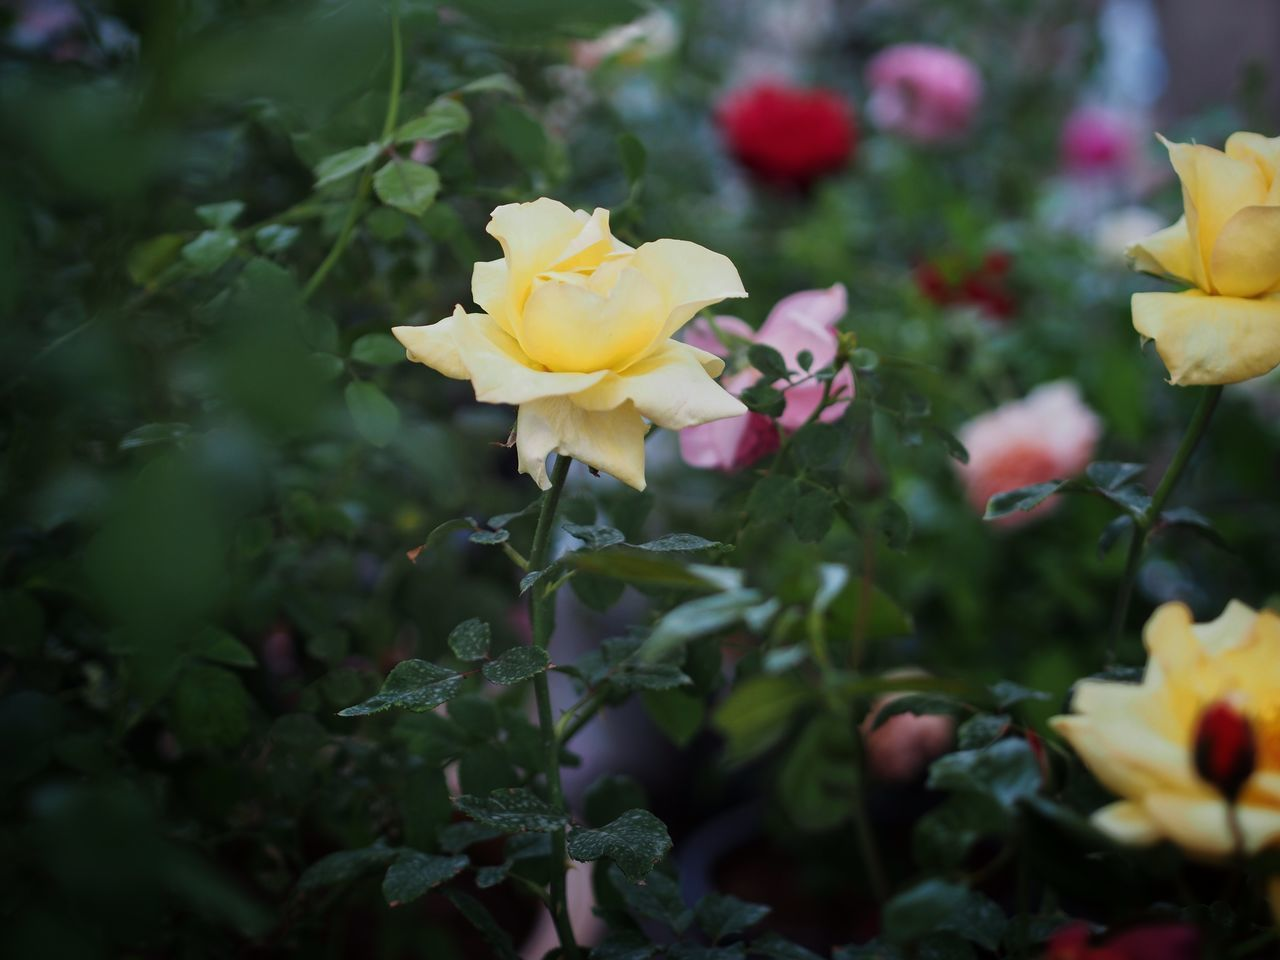 flower, petal, fragility, beauty in nature, flower head, nature, growth, yellow, freshness, plant, blooming, no people, day, outdoors, leaf, close-up